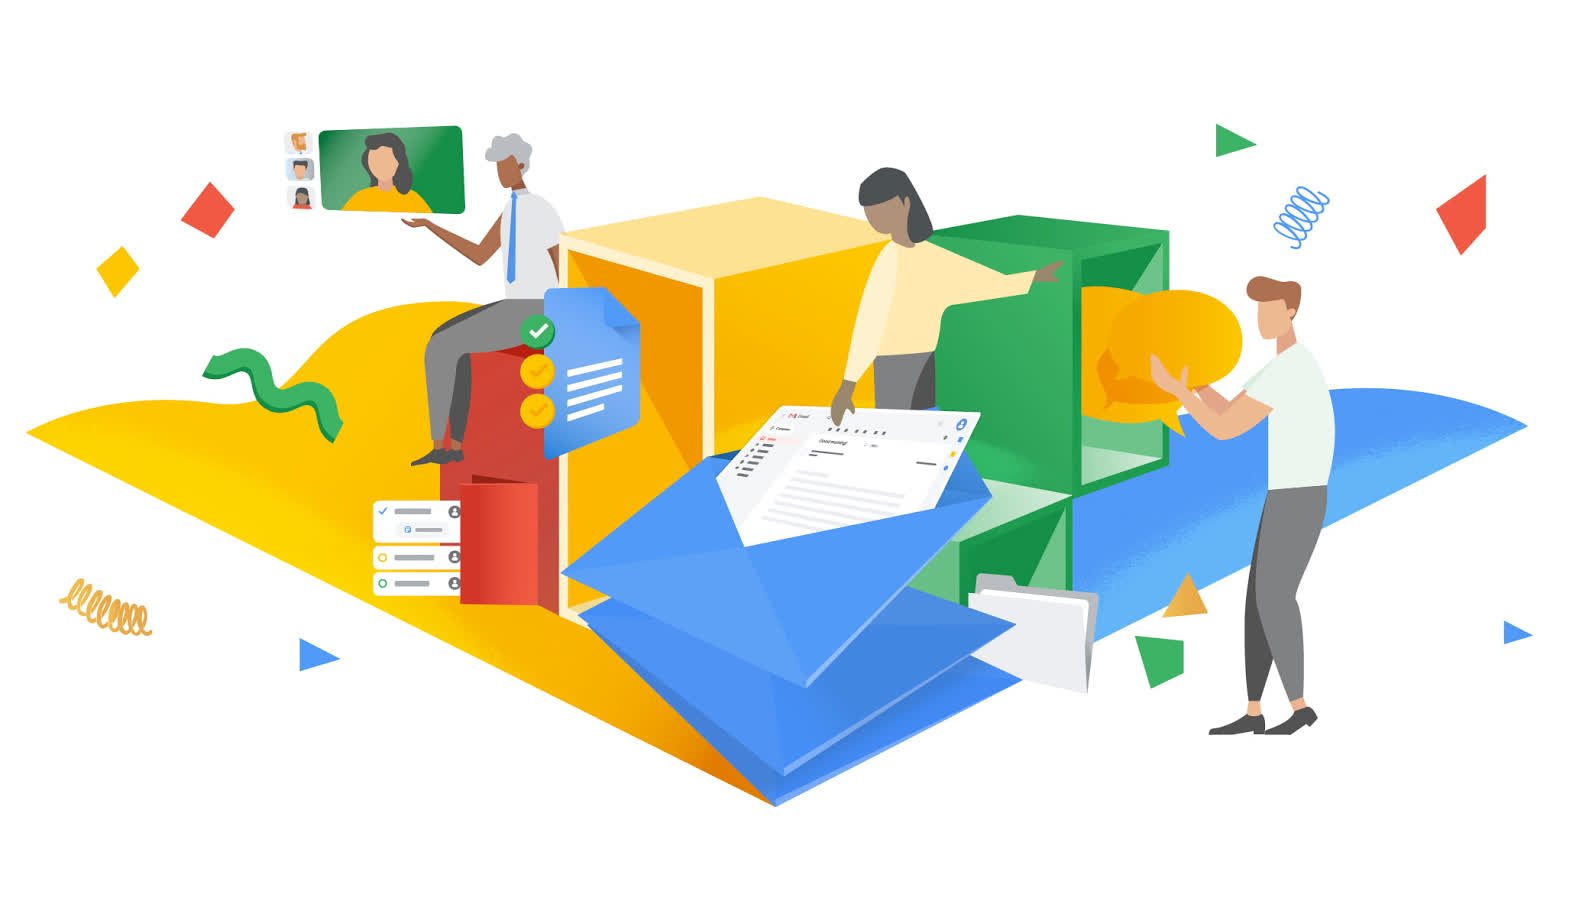 Google Workspace is the new G Suite, integrates many services, gets new logos, and more